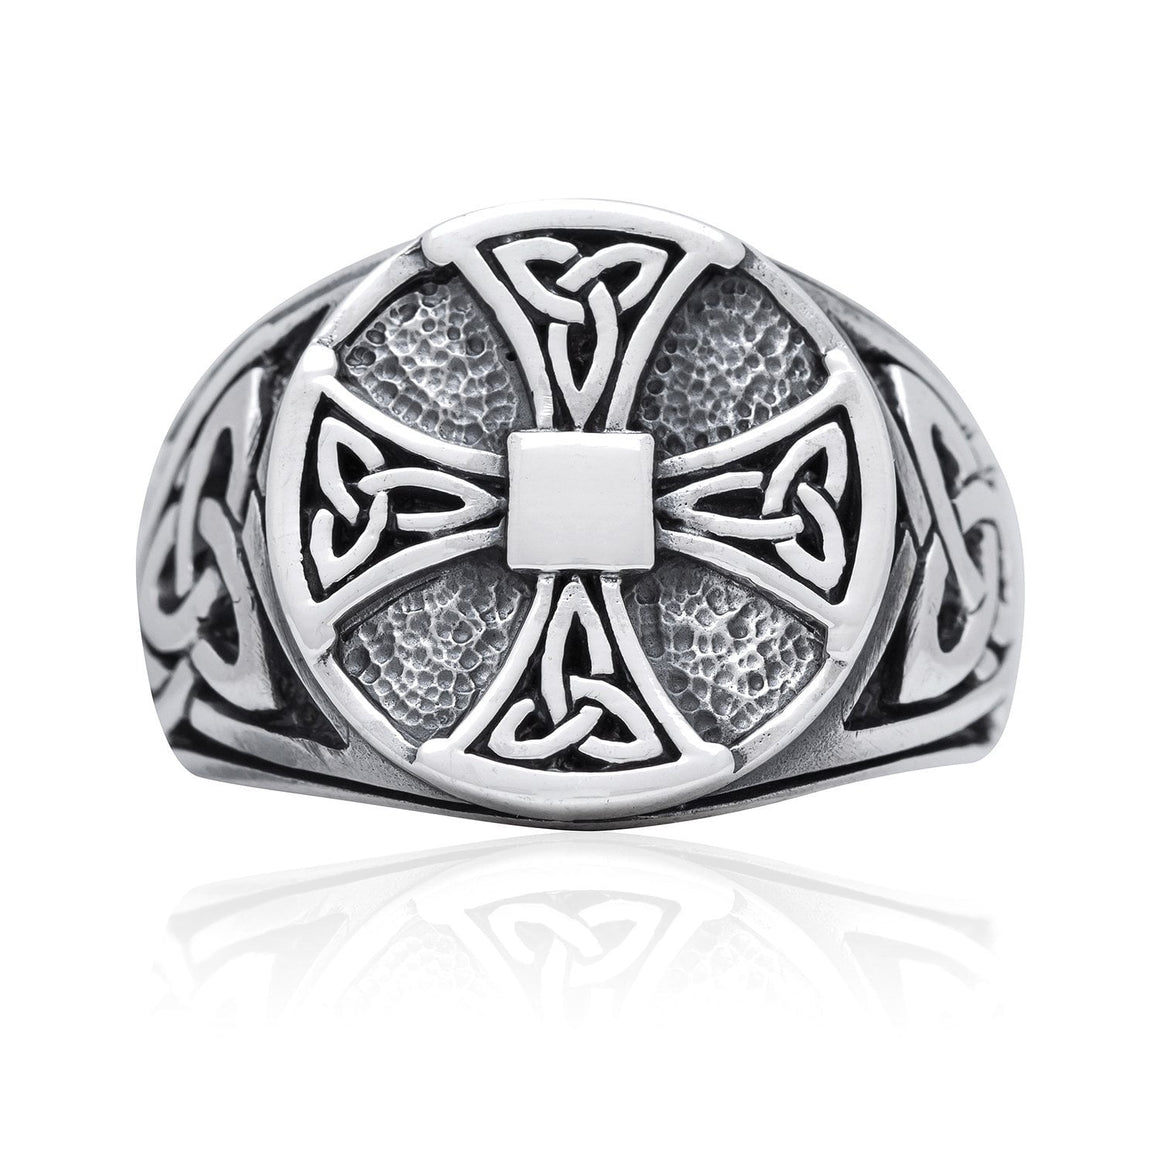 925 Sterling Silver Celtic Knot Knights Templar Iron Cross Triquetra Ring - SilverMania925